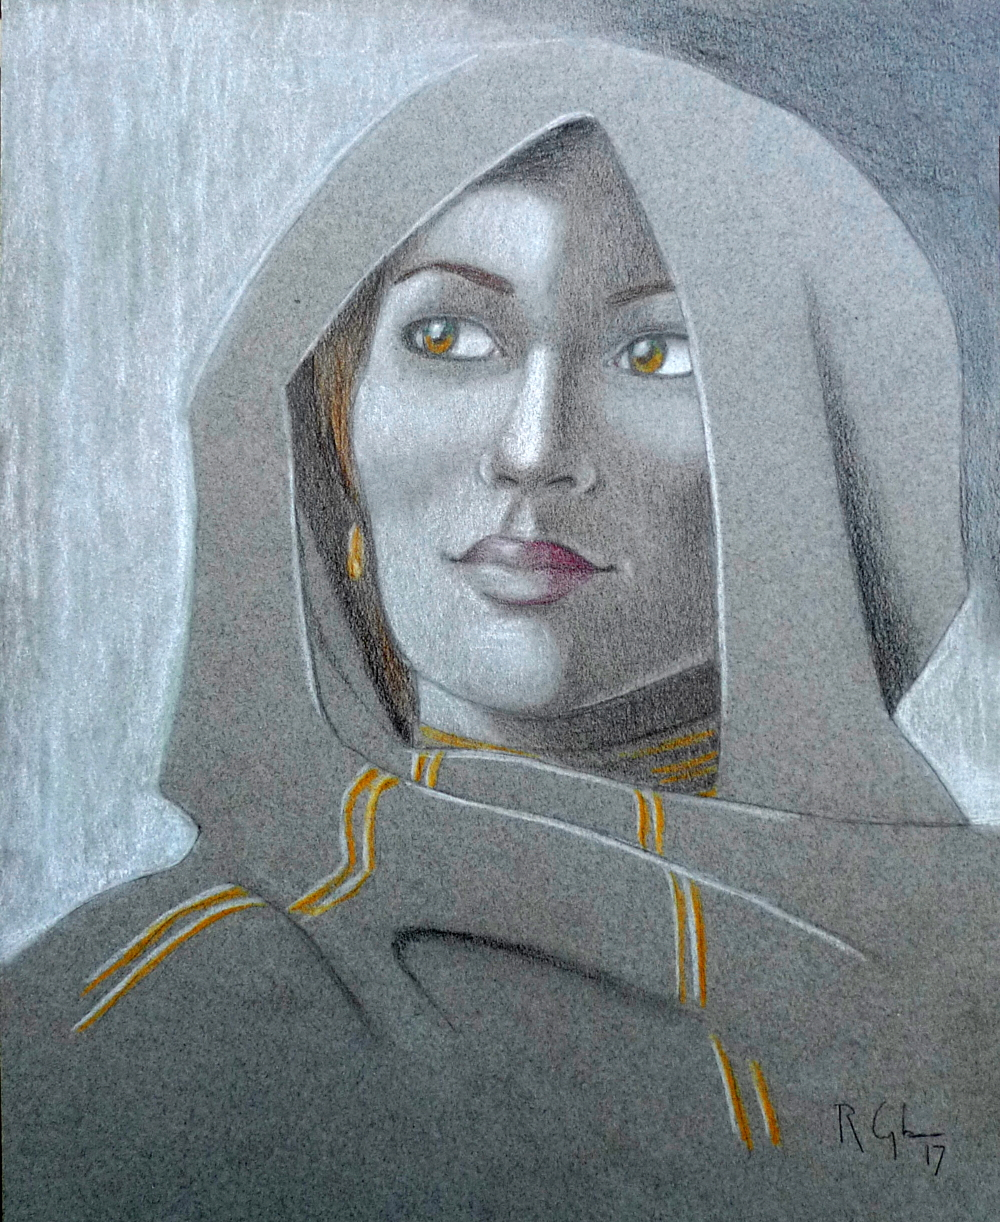 """"""" The sibyl of the future """", black pencil, color pencil and pastel on paper"""